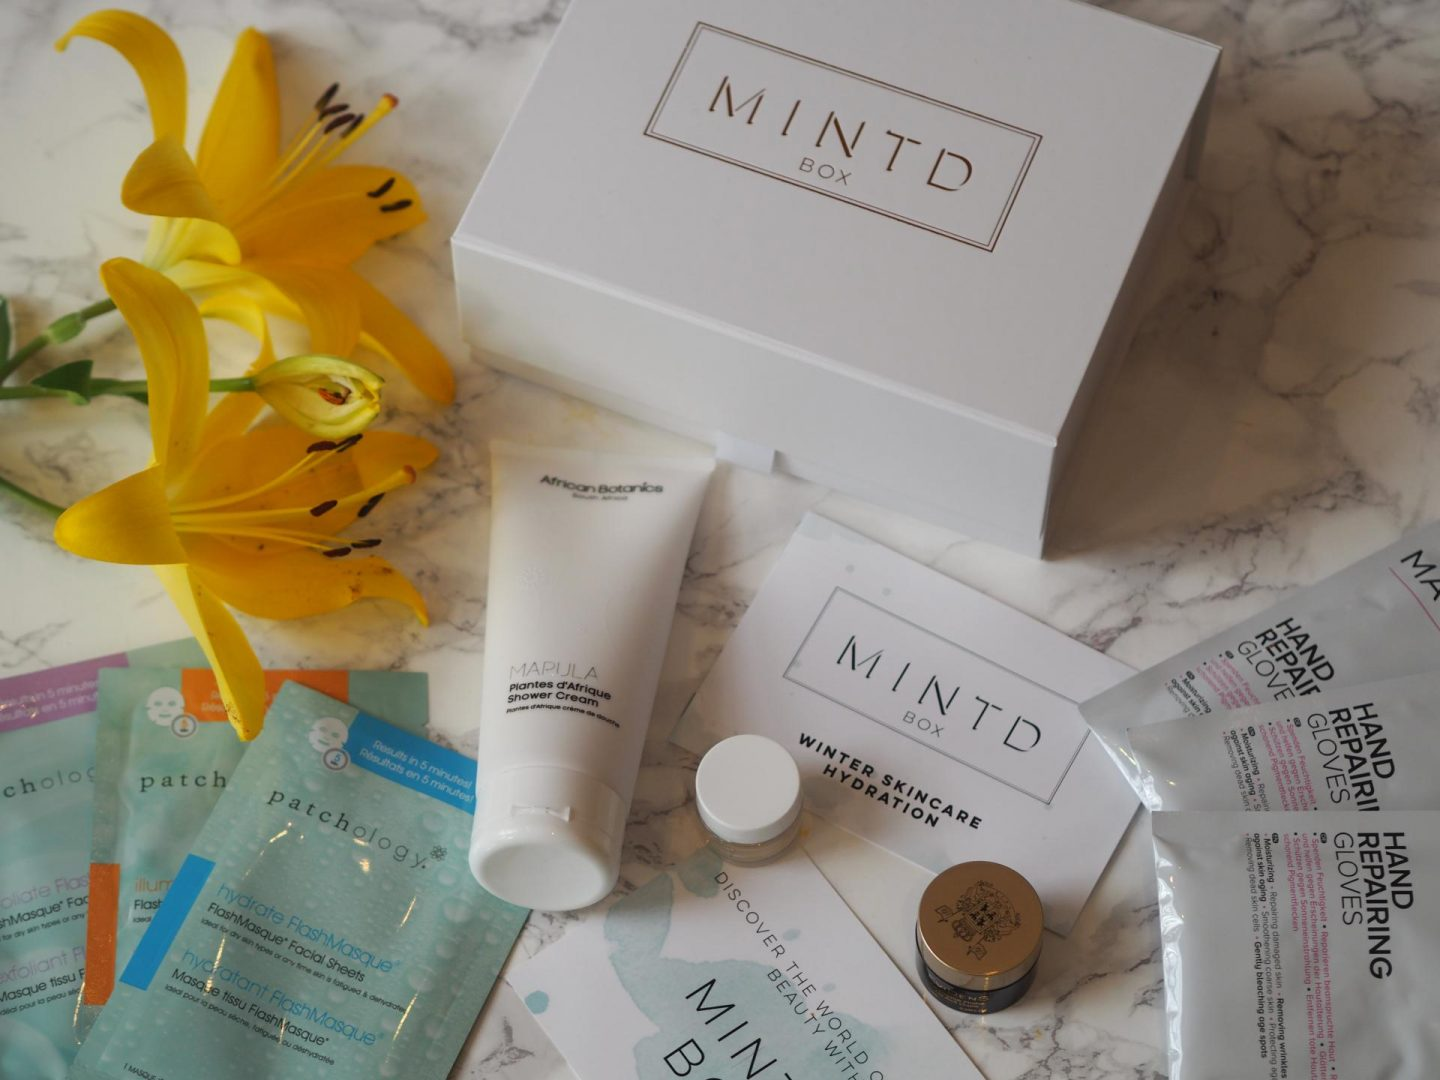 MINTD beauty box